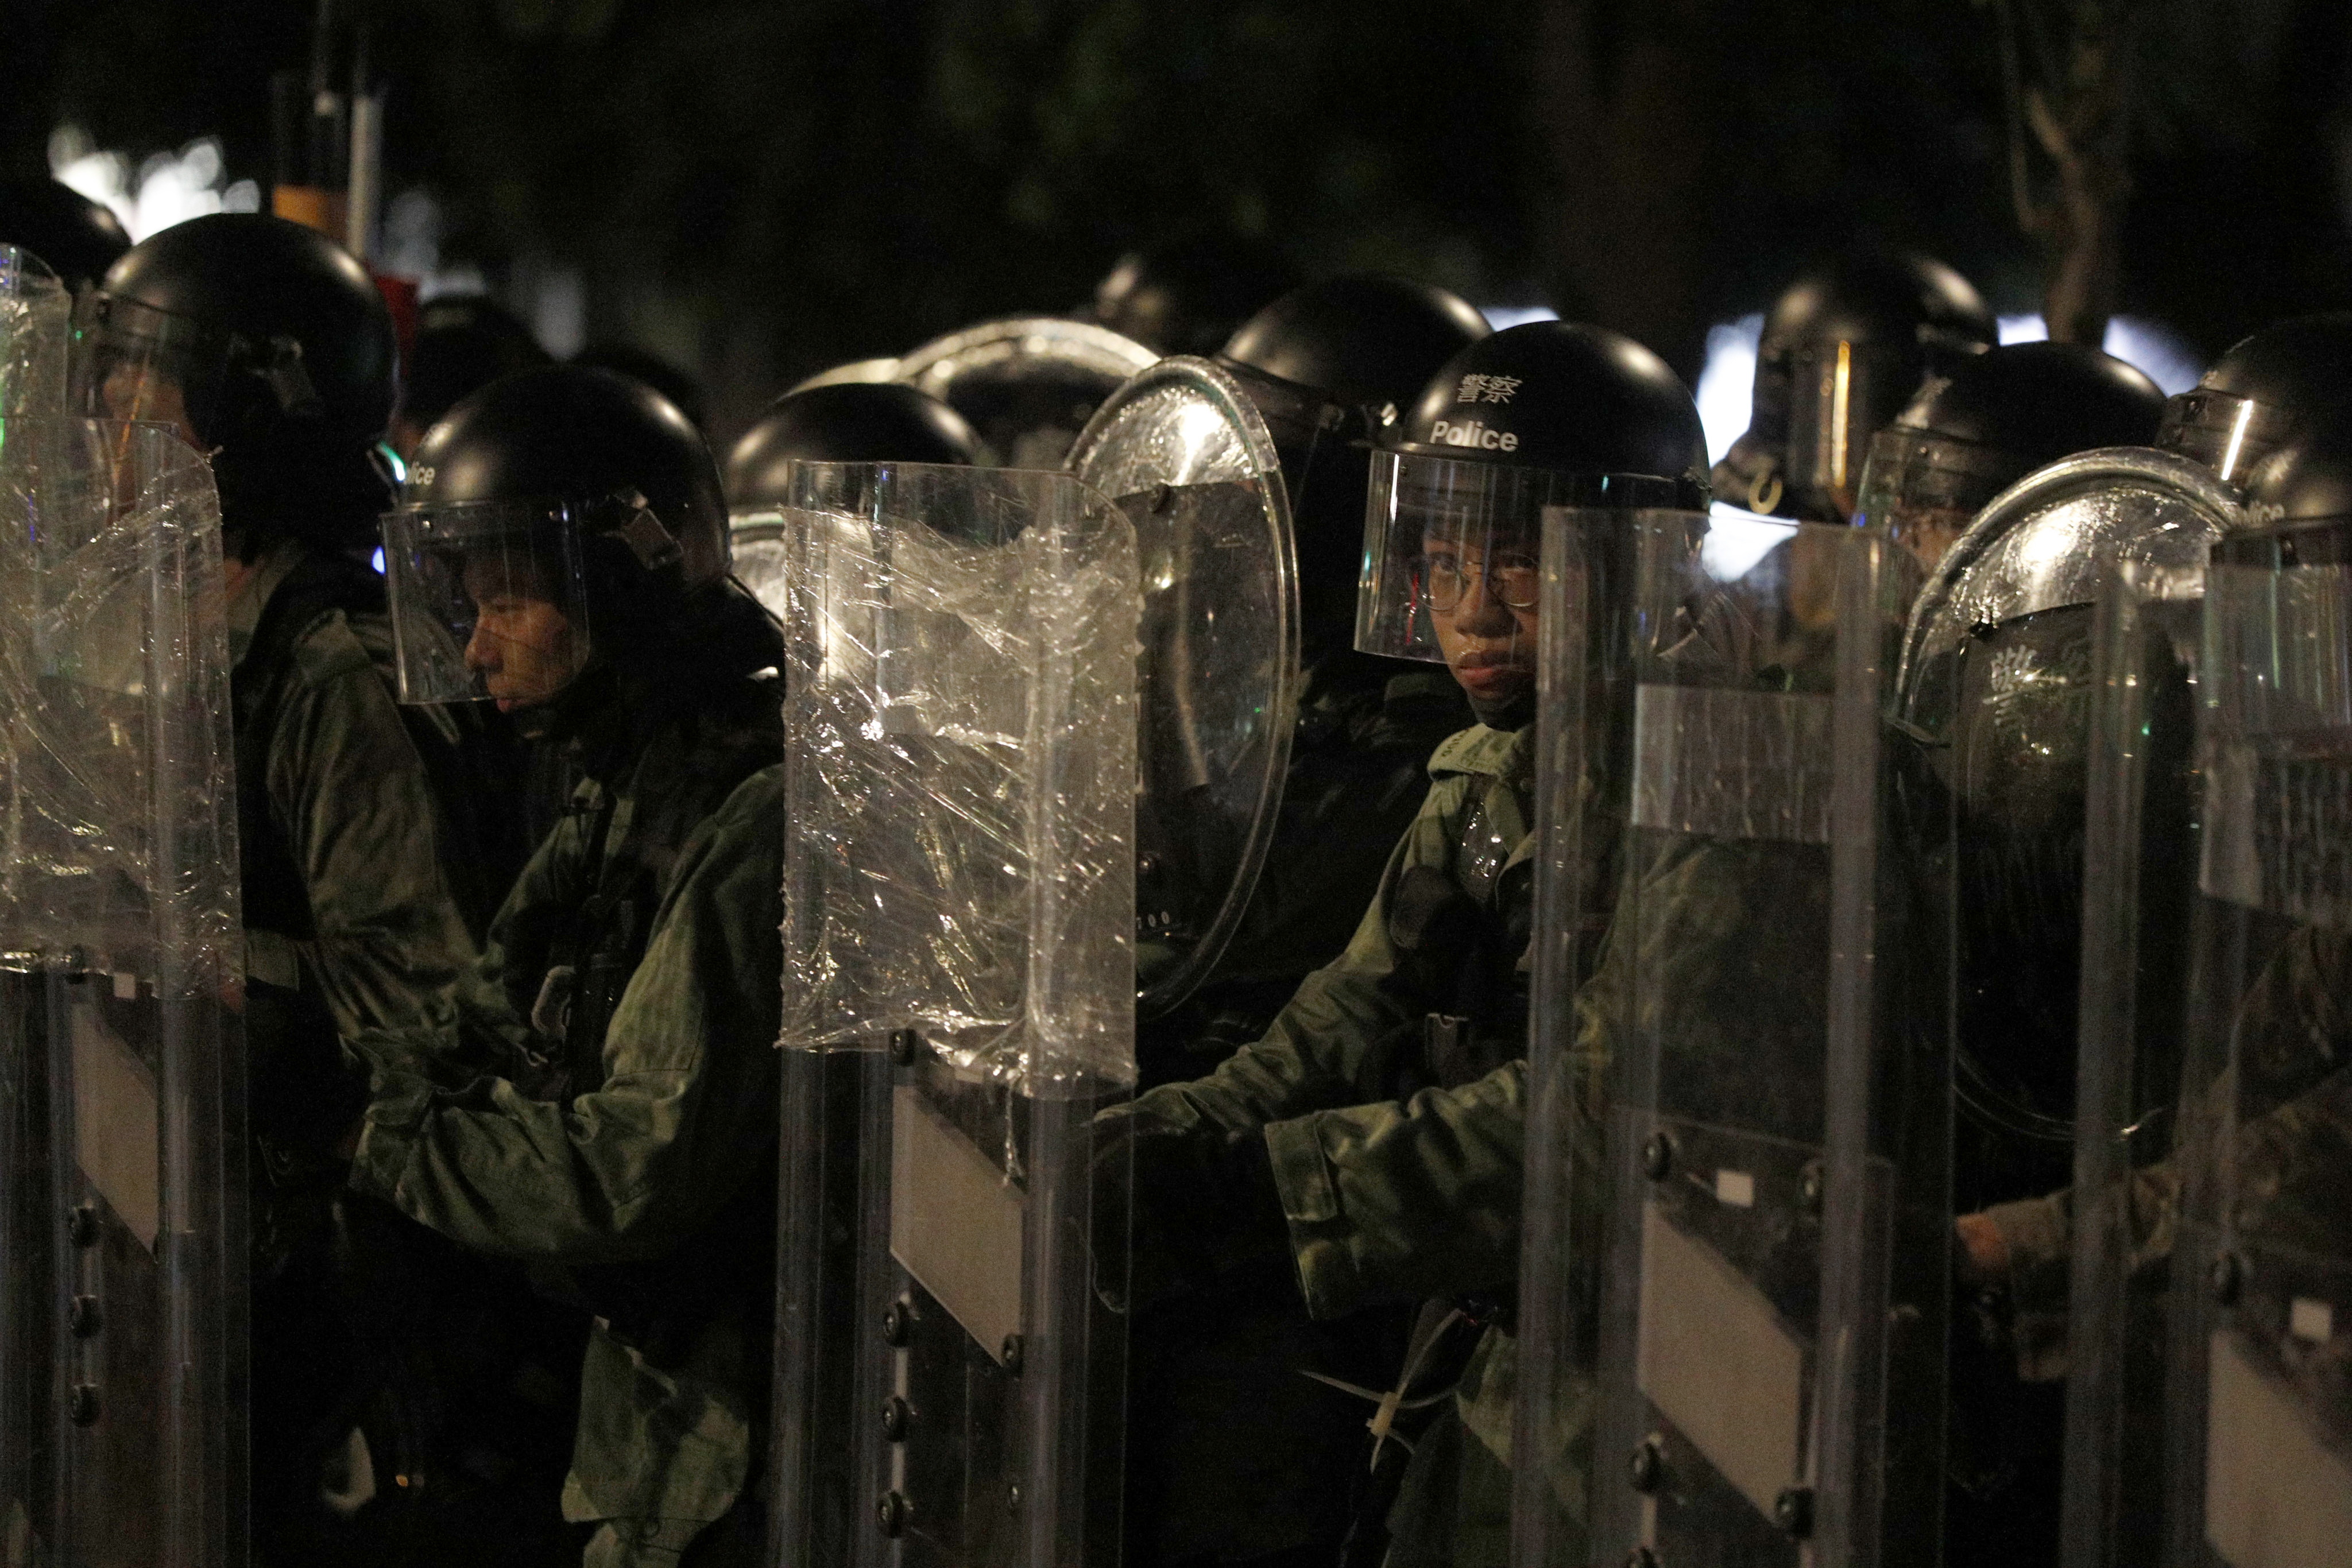 Riot police stand behind shields as they face off protesters in Yuen LongSaturday.